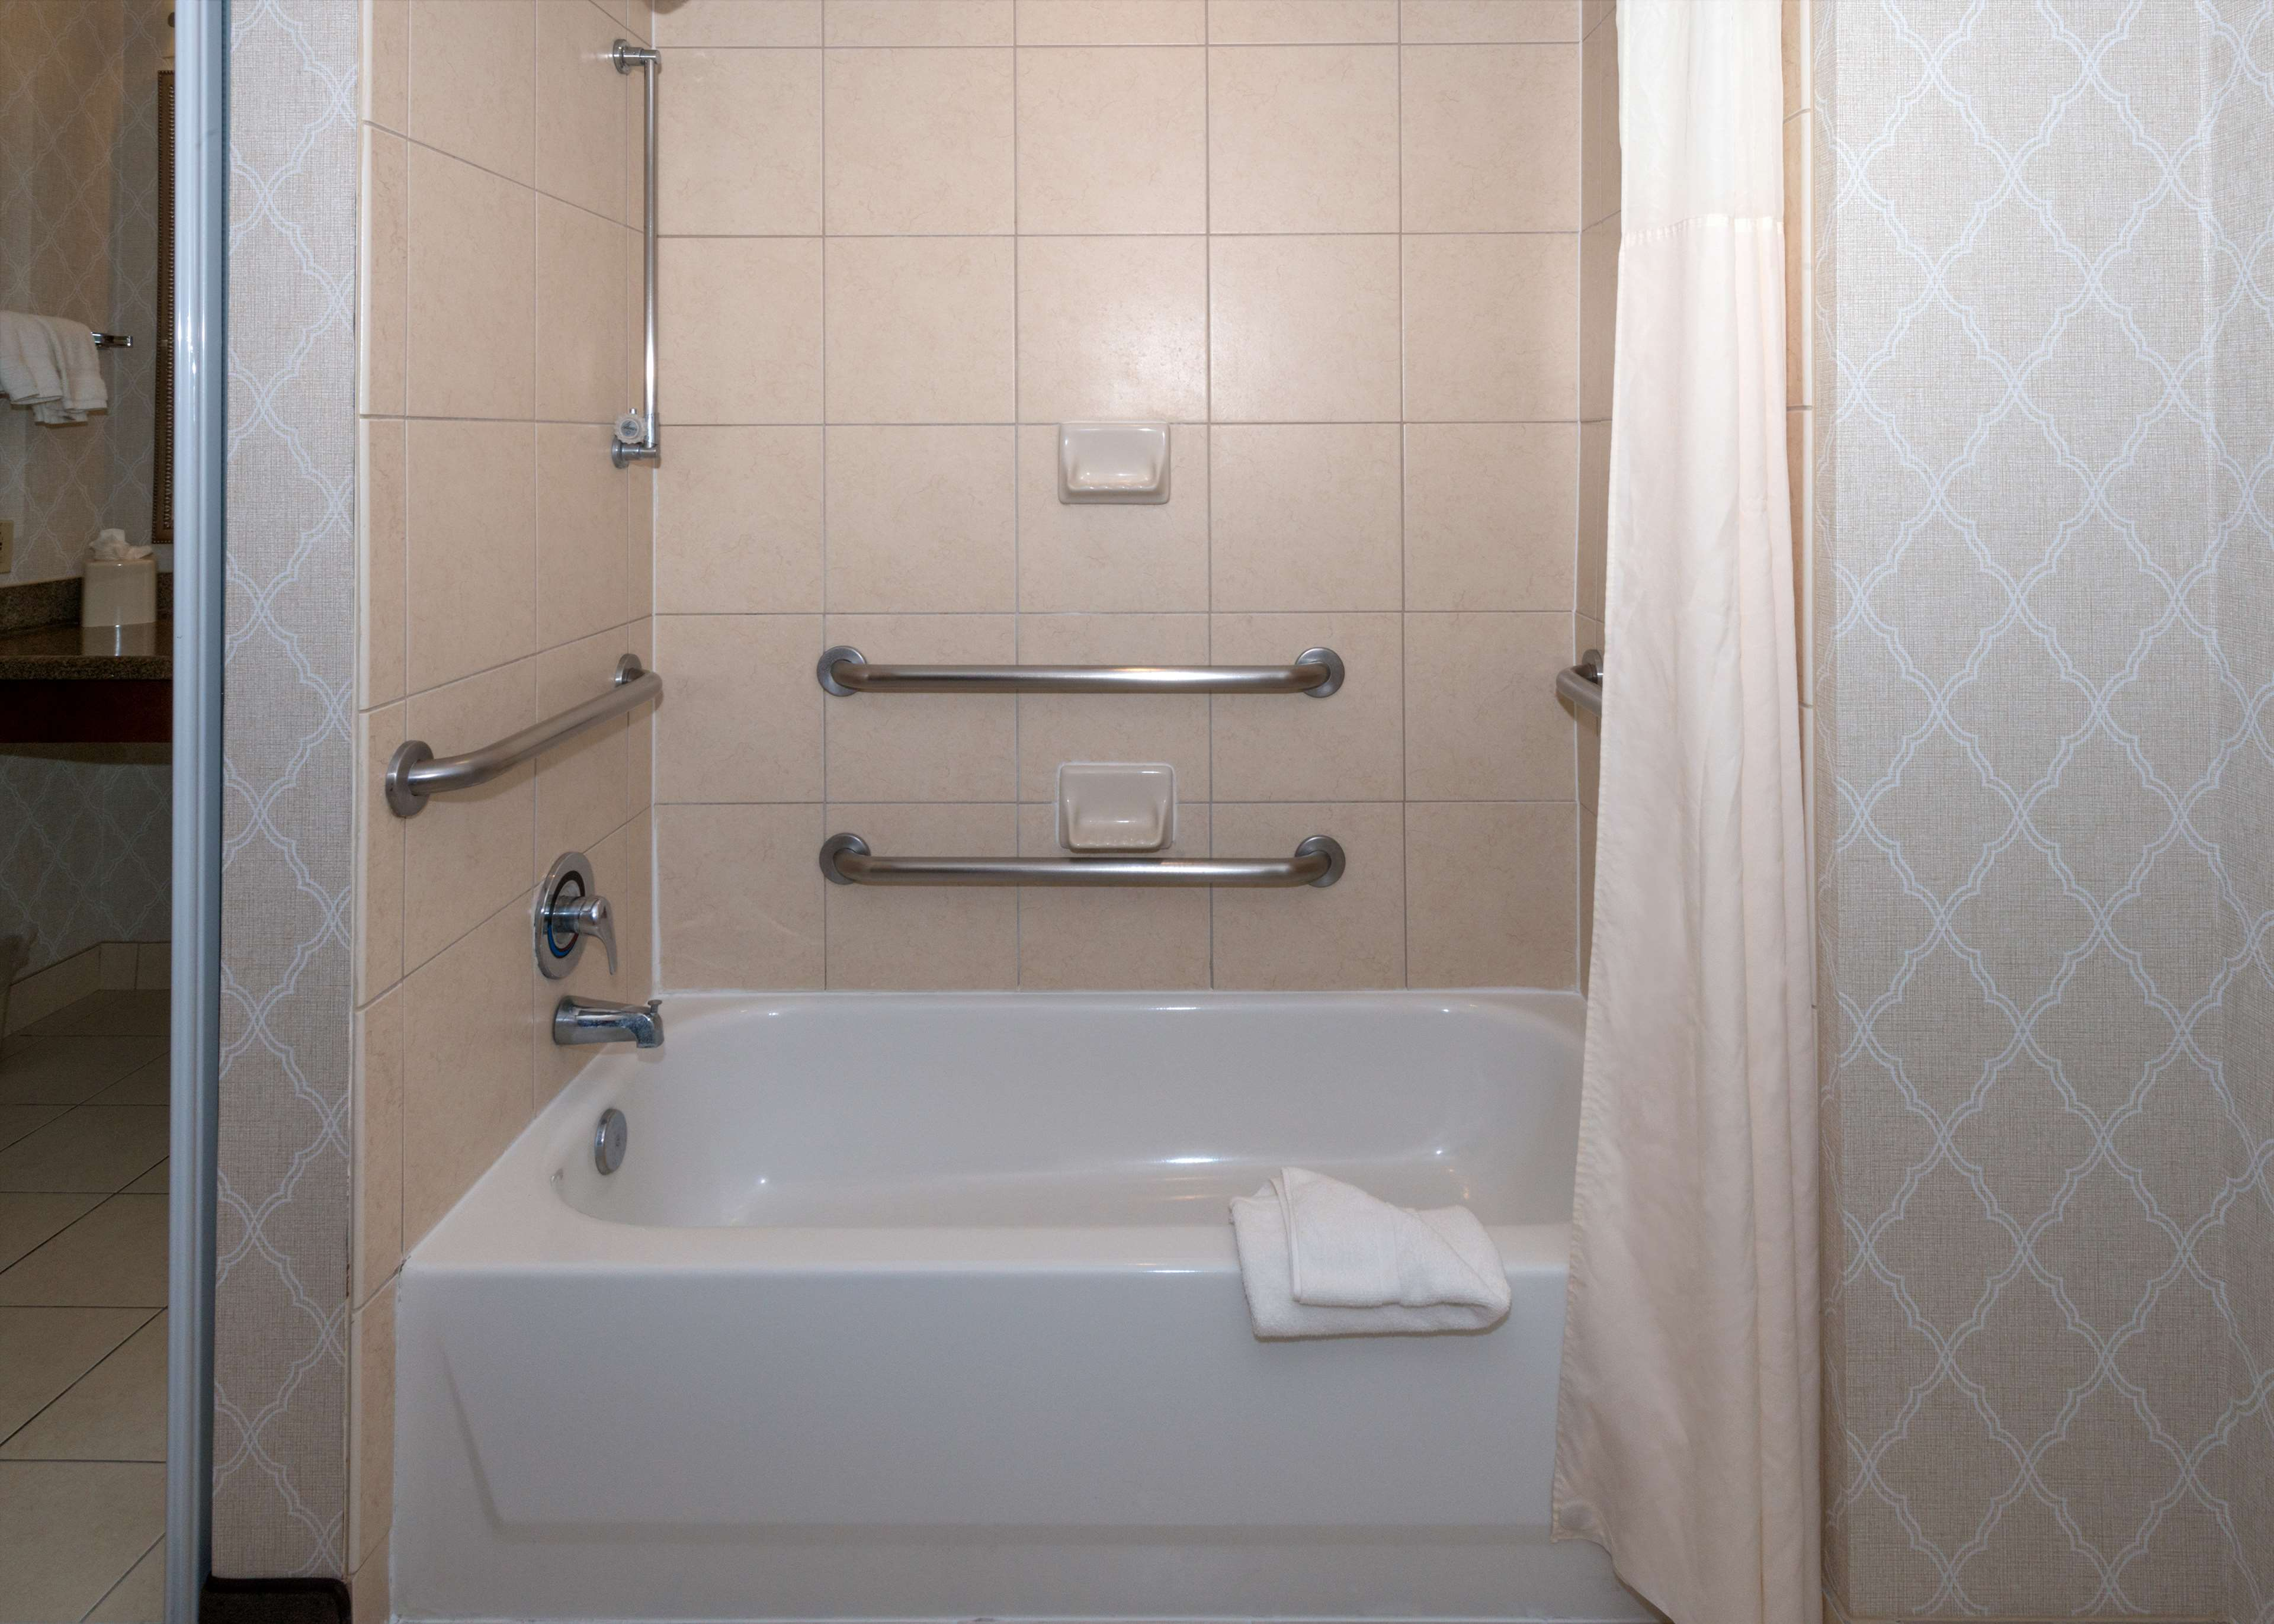 Homewood Suites by Hilton New Orleans image 20